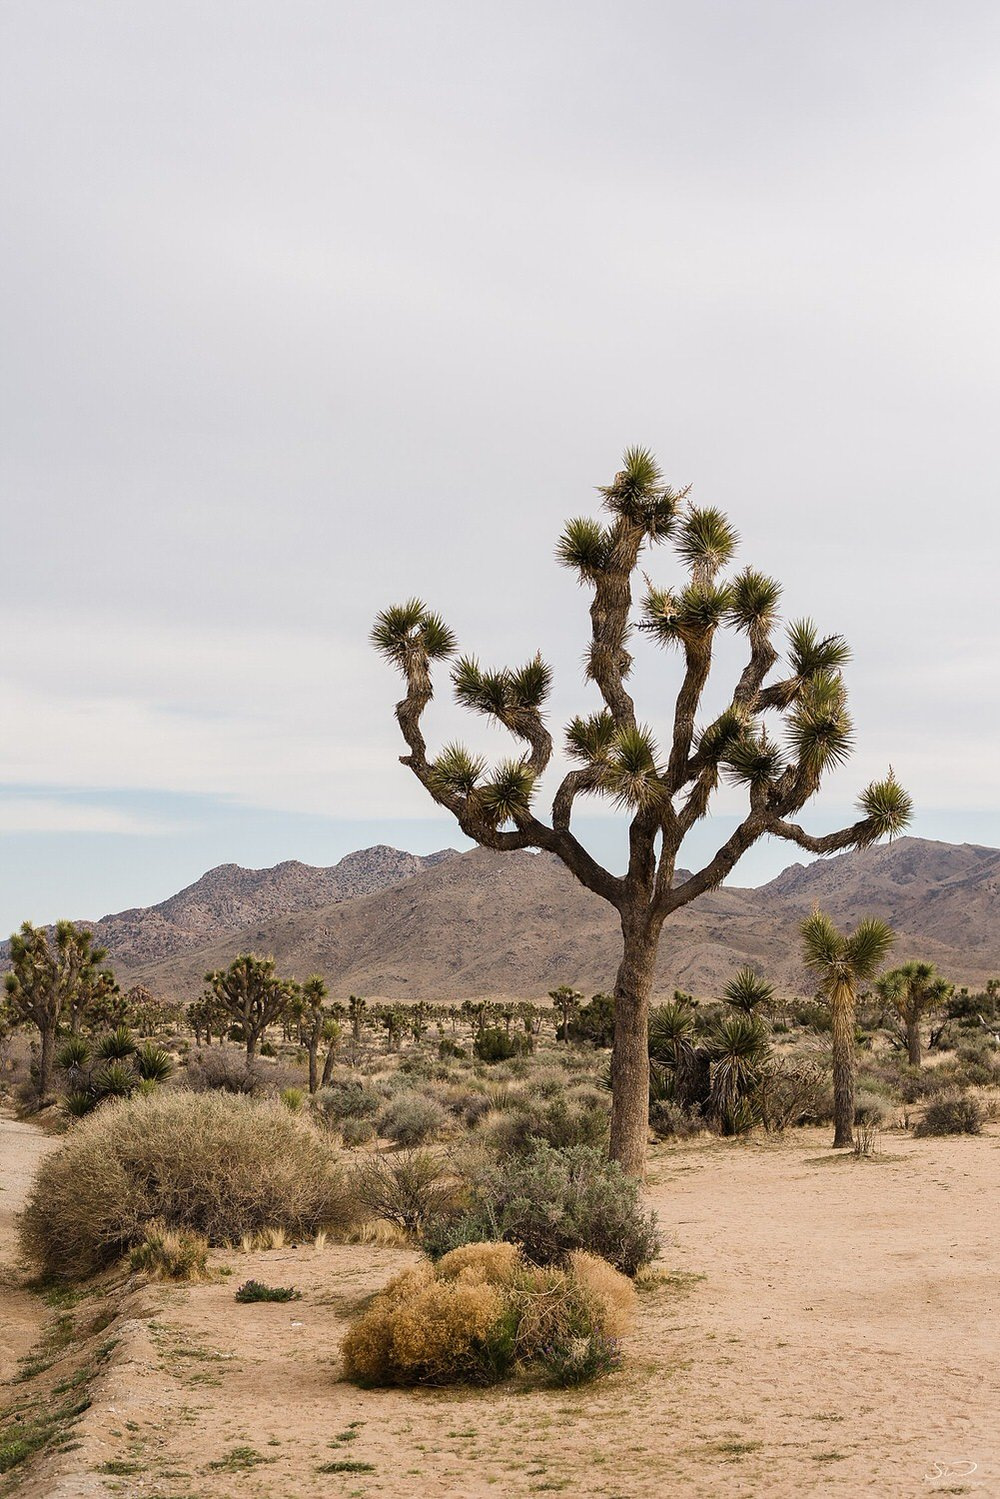 Landscape | Joshua Tree Desert Wedding & Engagement Inspiration